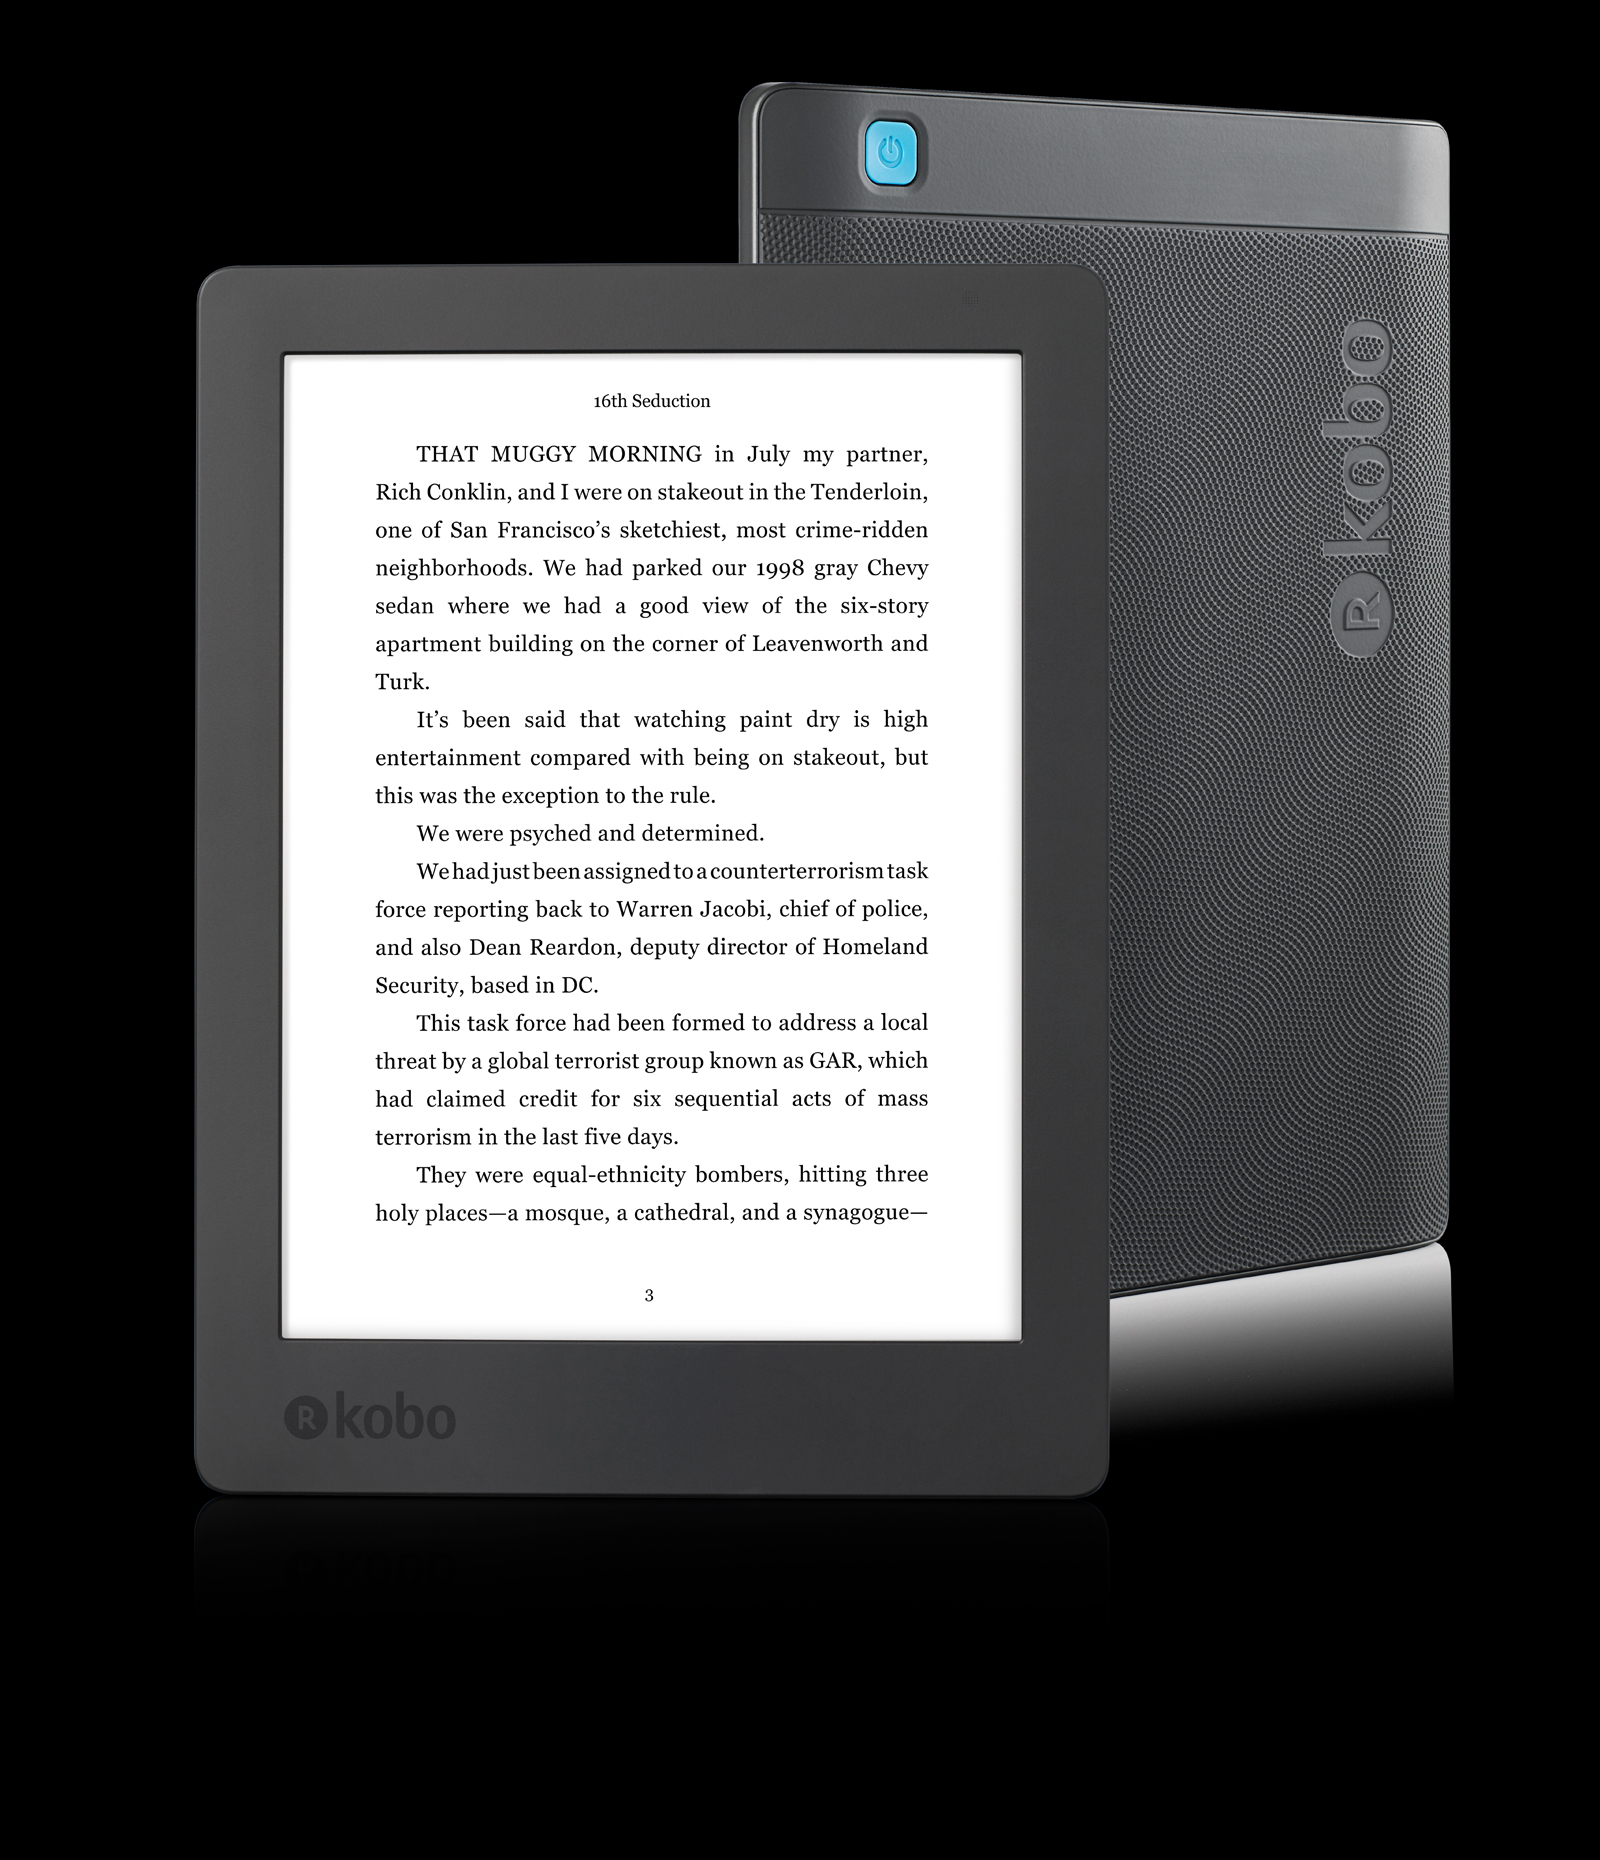 Kobo's latest waterproof e-reader is sized for poolside reading